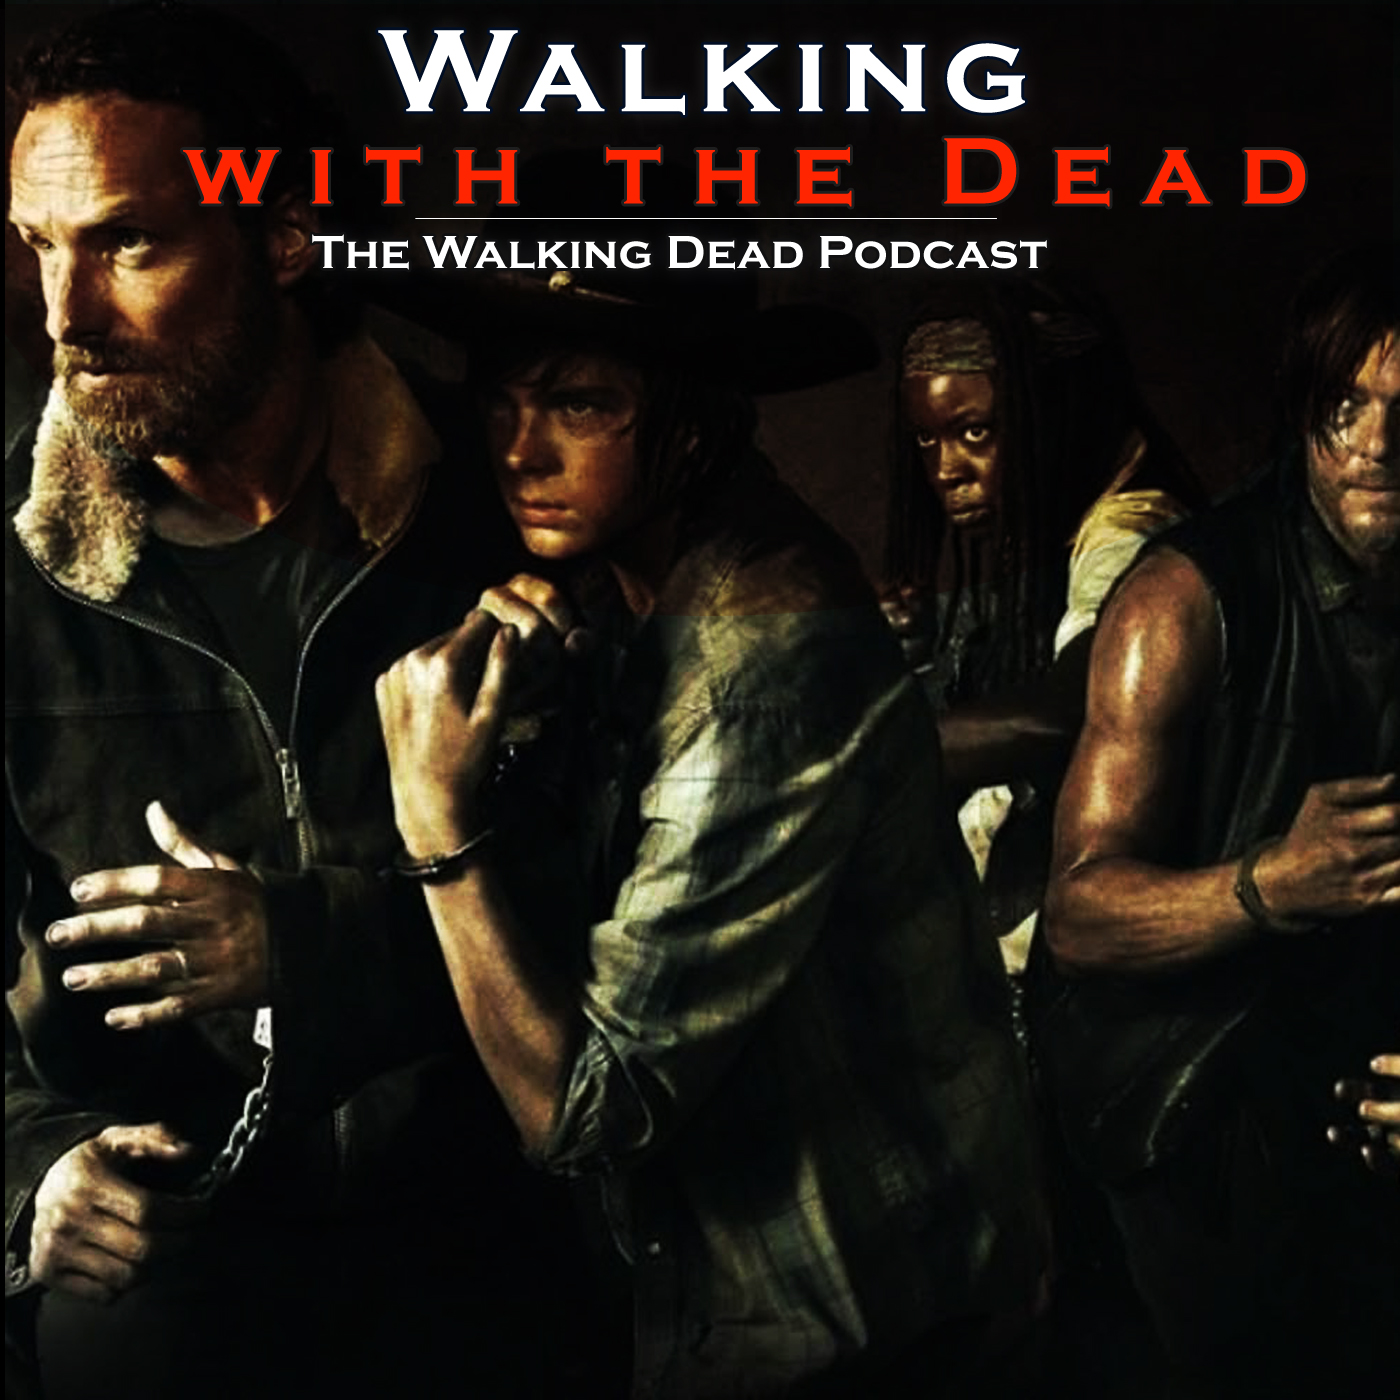 Walking with the Dead: THE WALKING DEAD Podcast